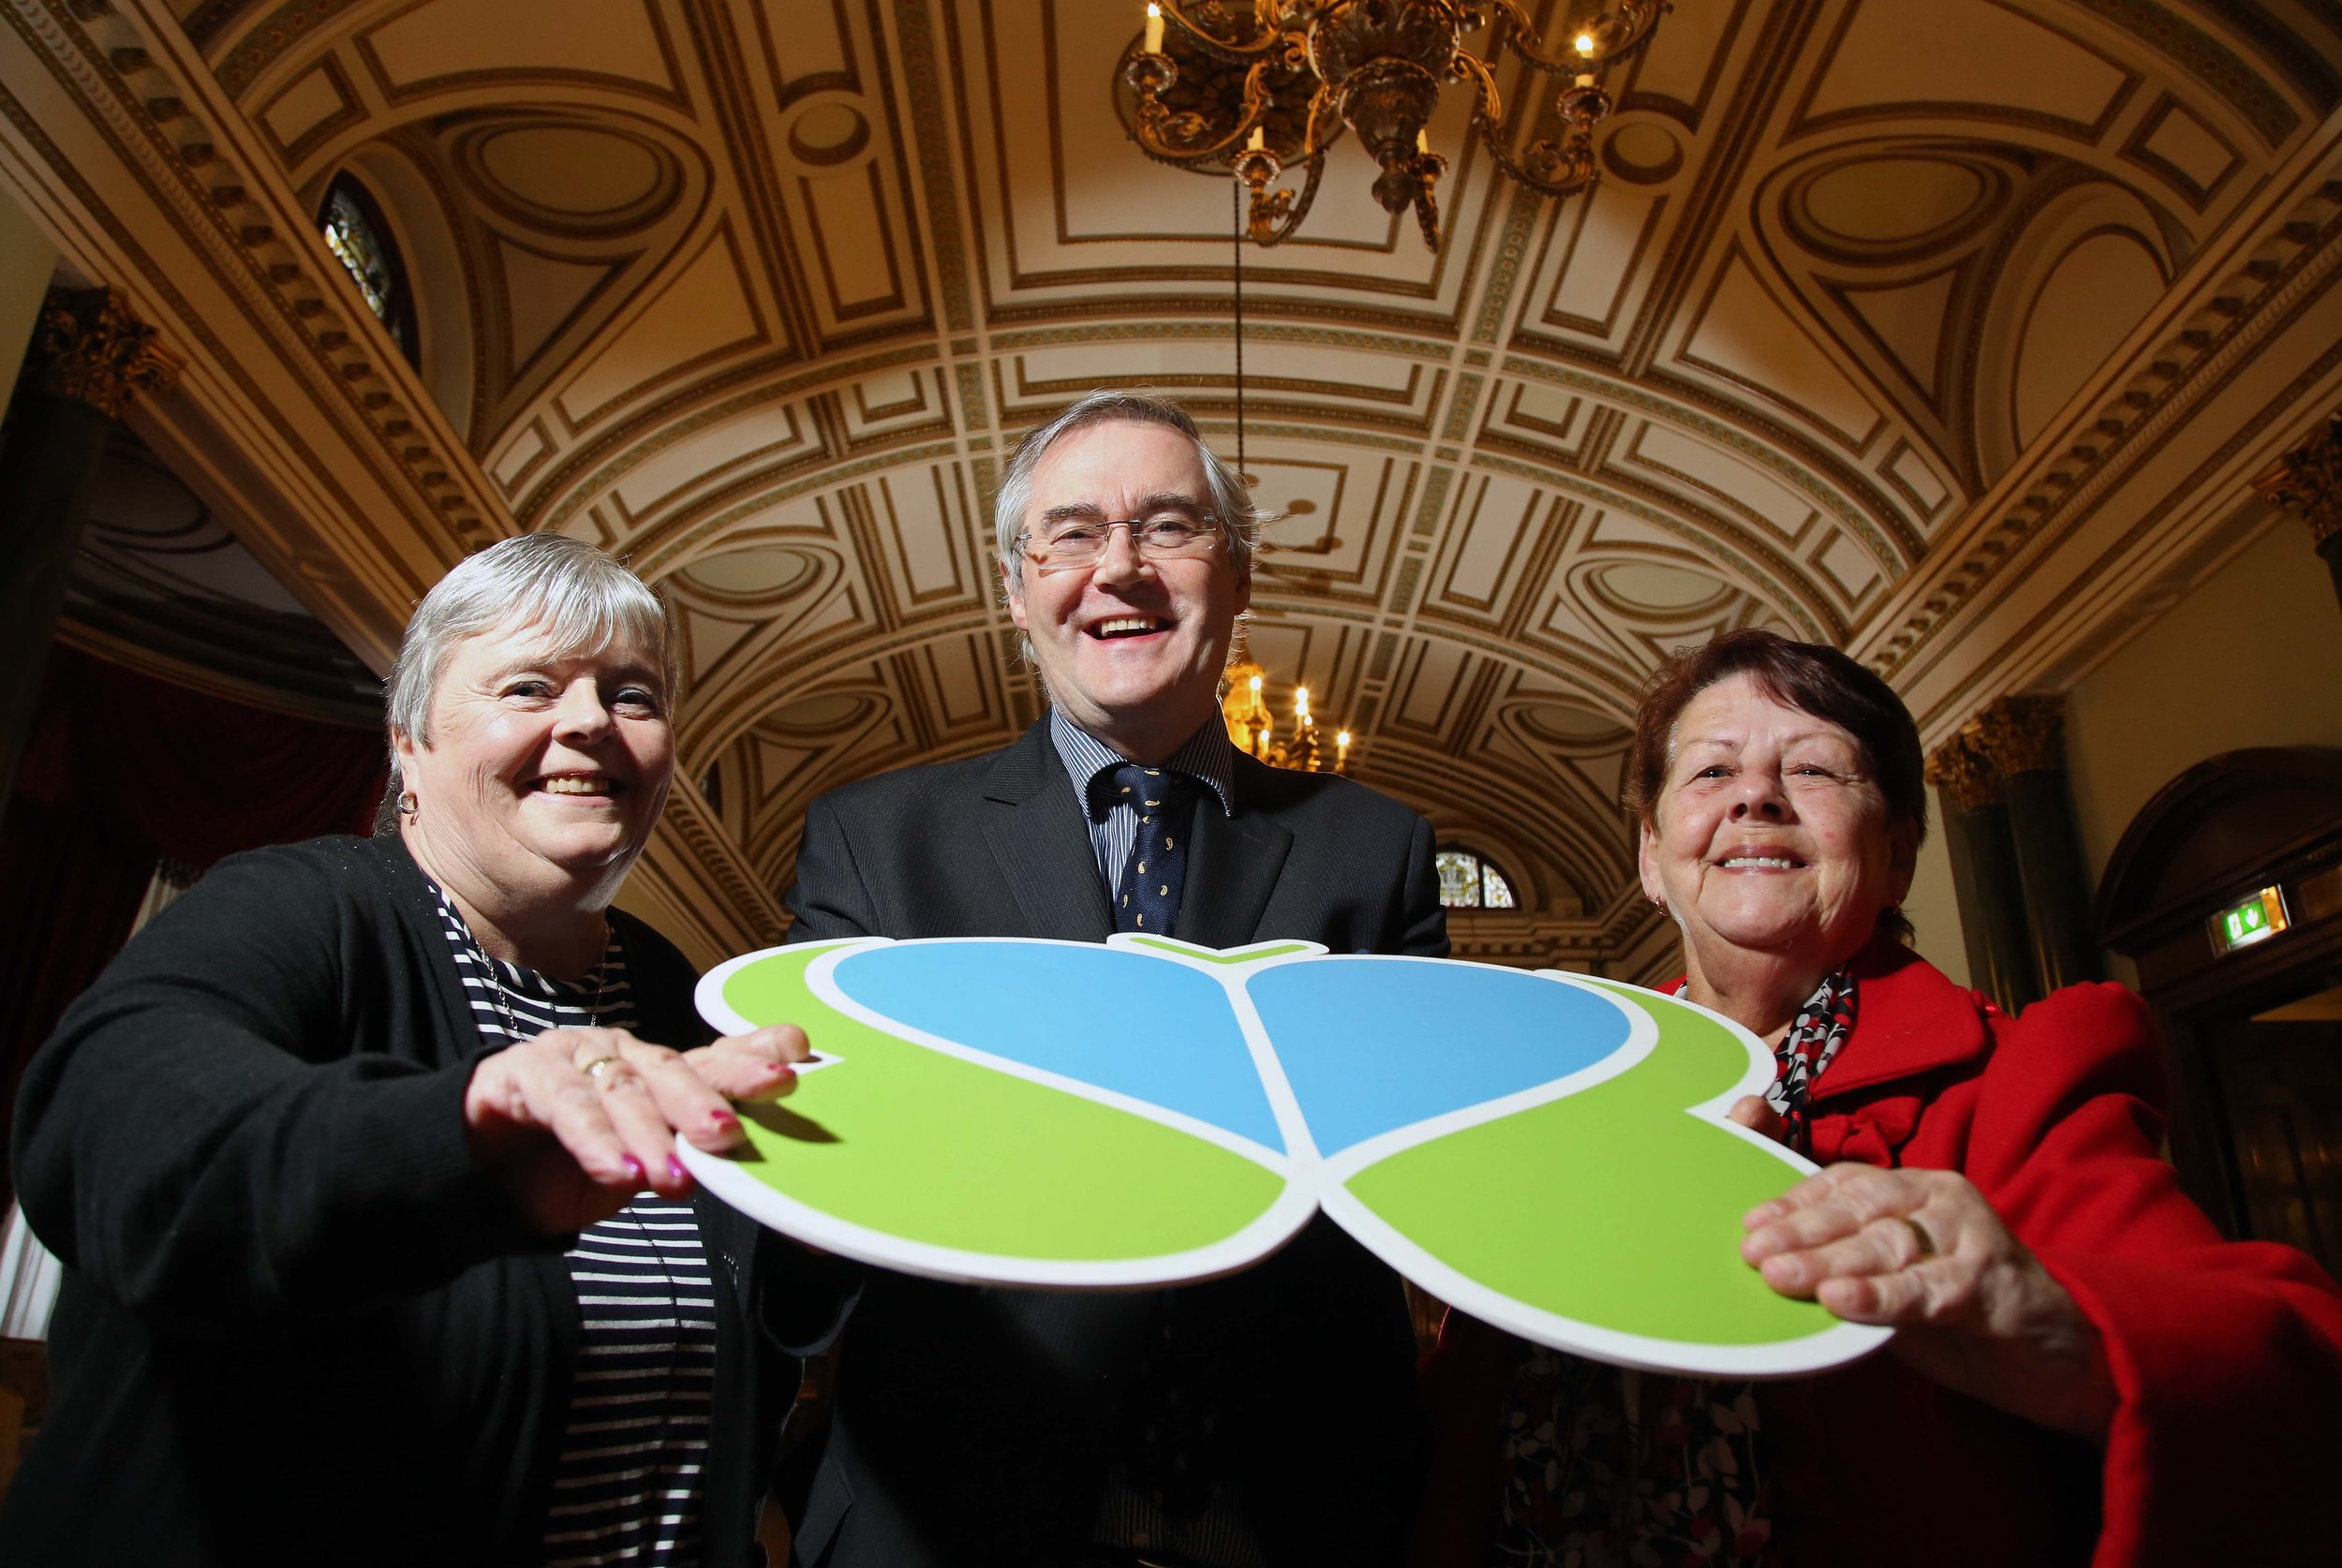 Pictured with Dr Eamon Phoenix are Brain Injury Matters service users Margaret Kinnard and Jean Mc Veigh.